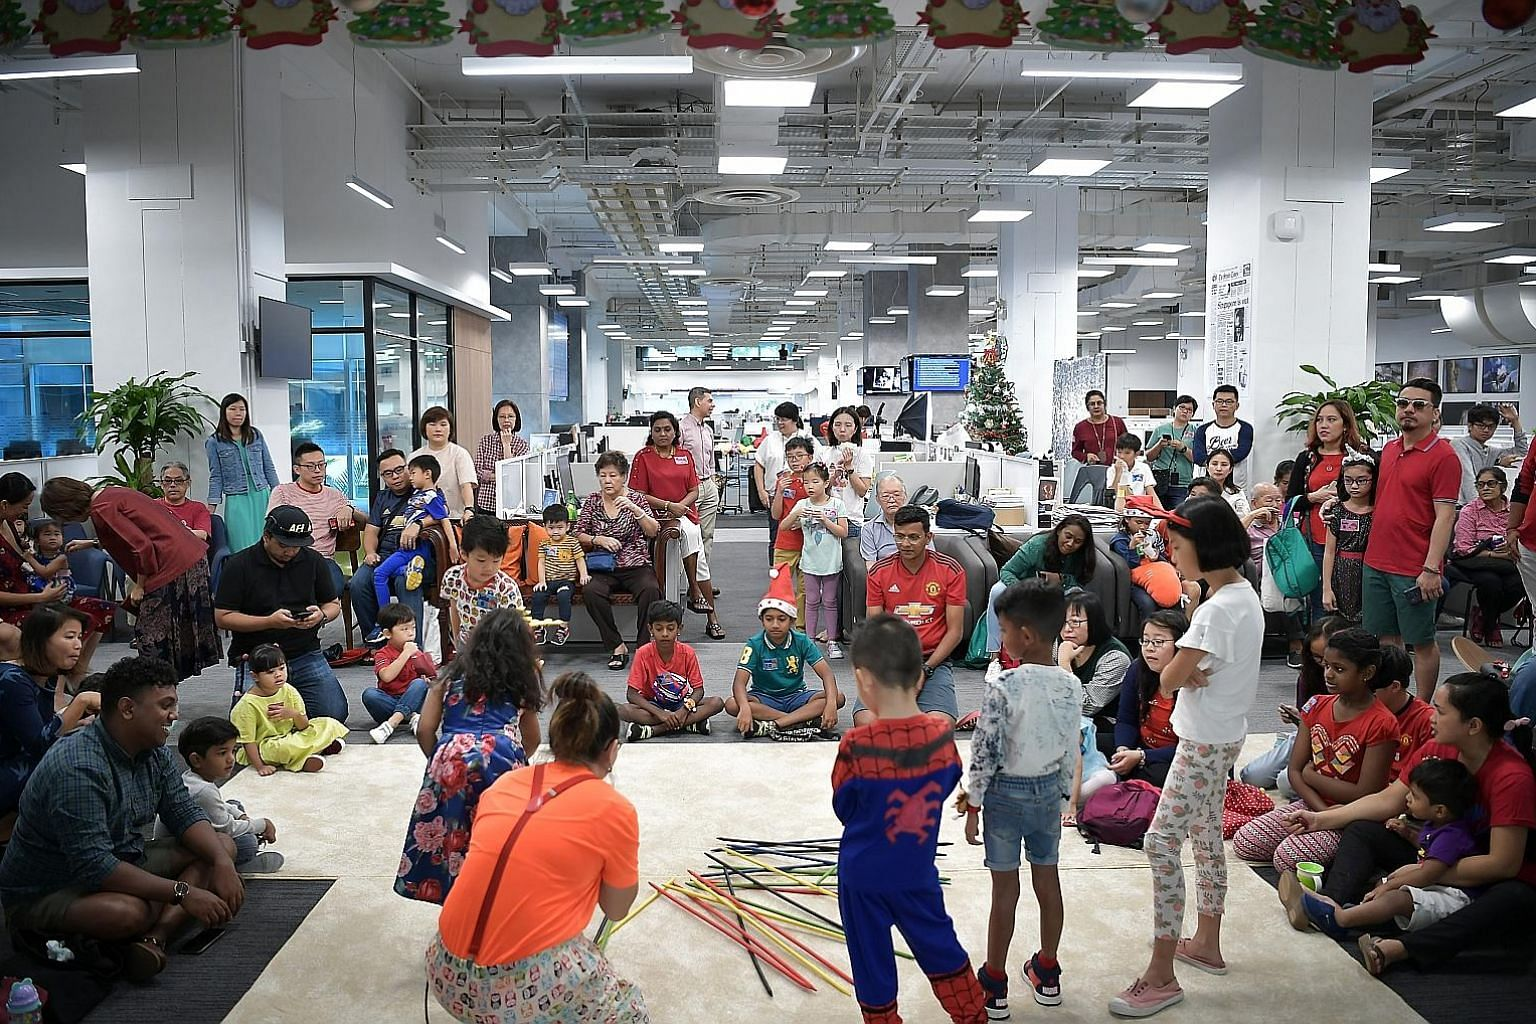 Children of The Straits Times staff got the opportunity to see where their parents work, as well as enjoy treats such as candy floss, popcorn and ice cream from a pushcart, at the year-end celebration and Christmas party yesterday. There was also a b